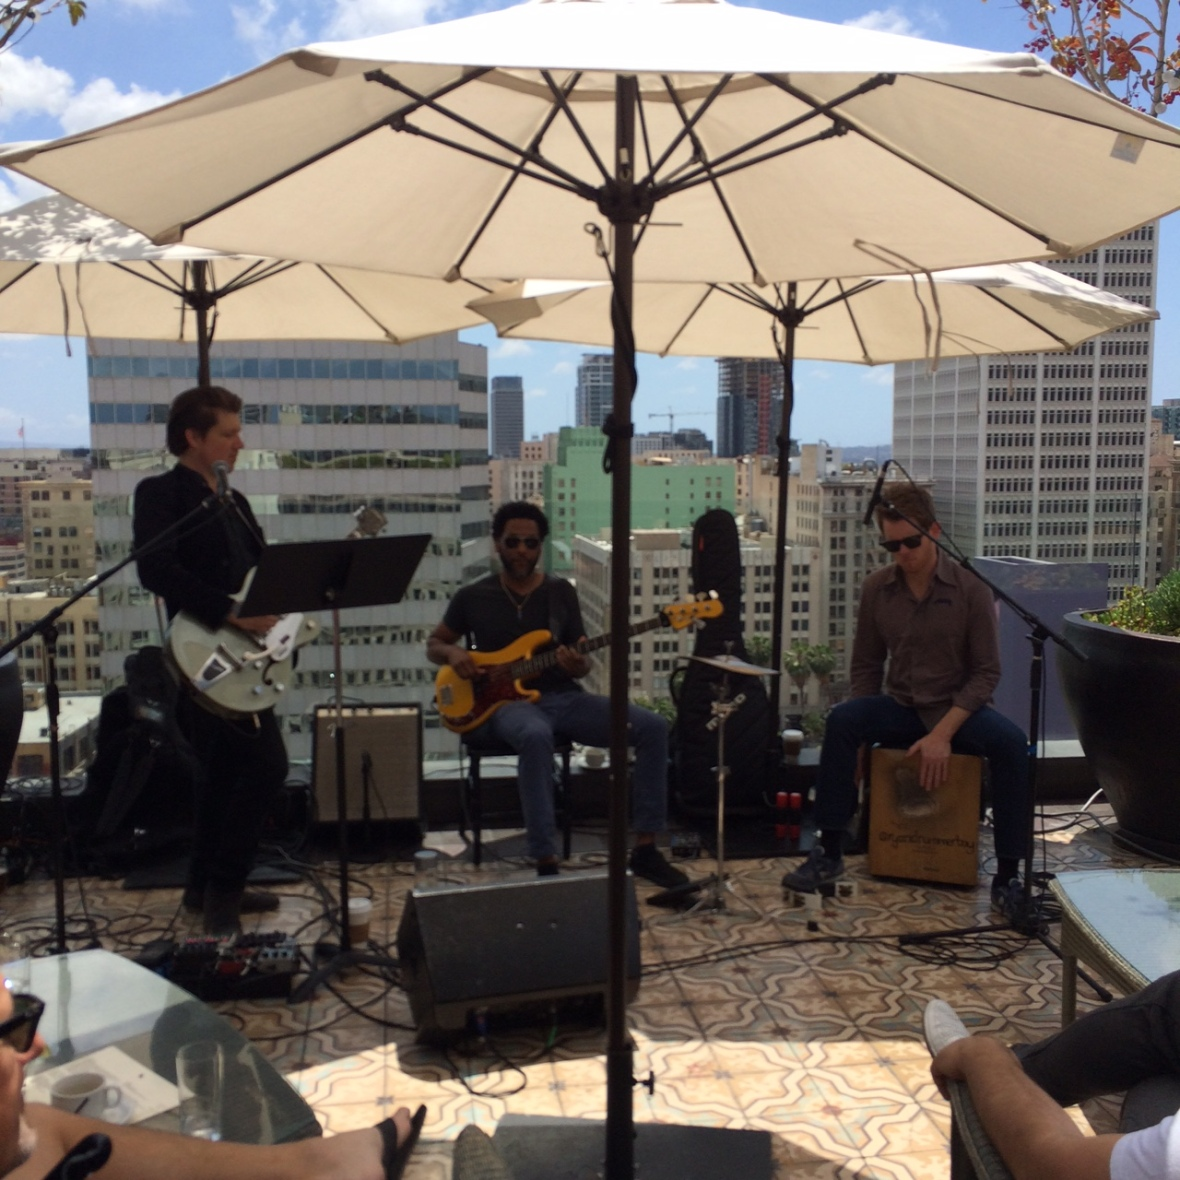 Live music and great views at Perch